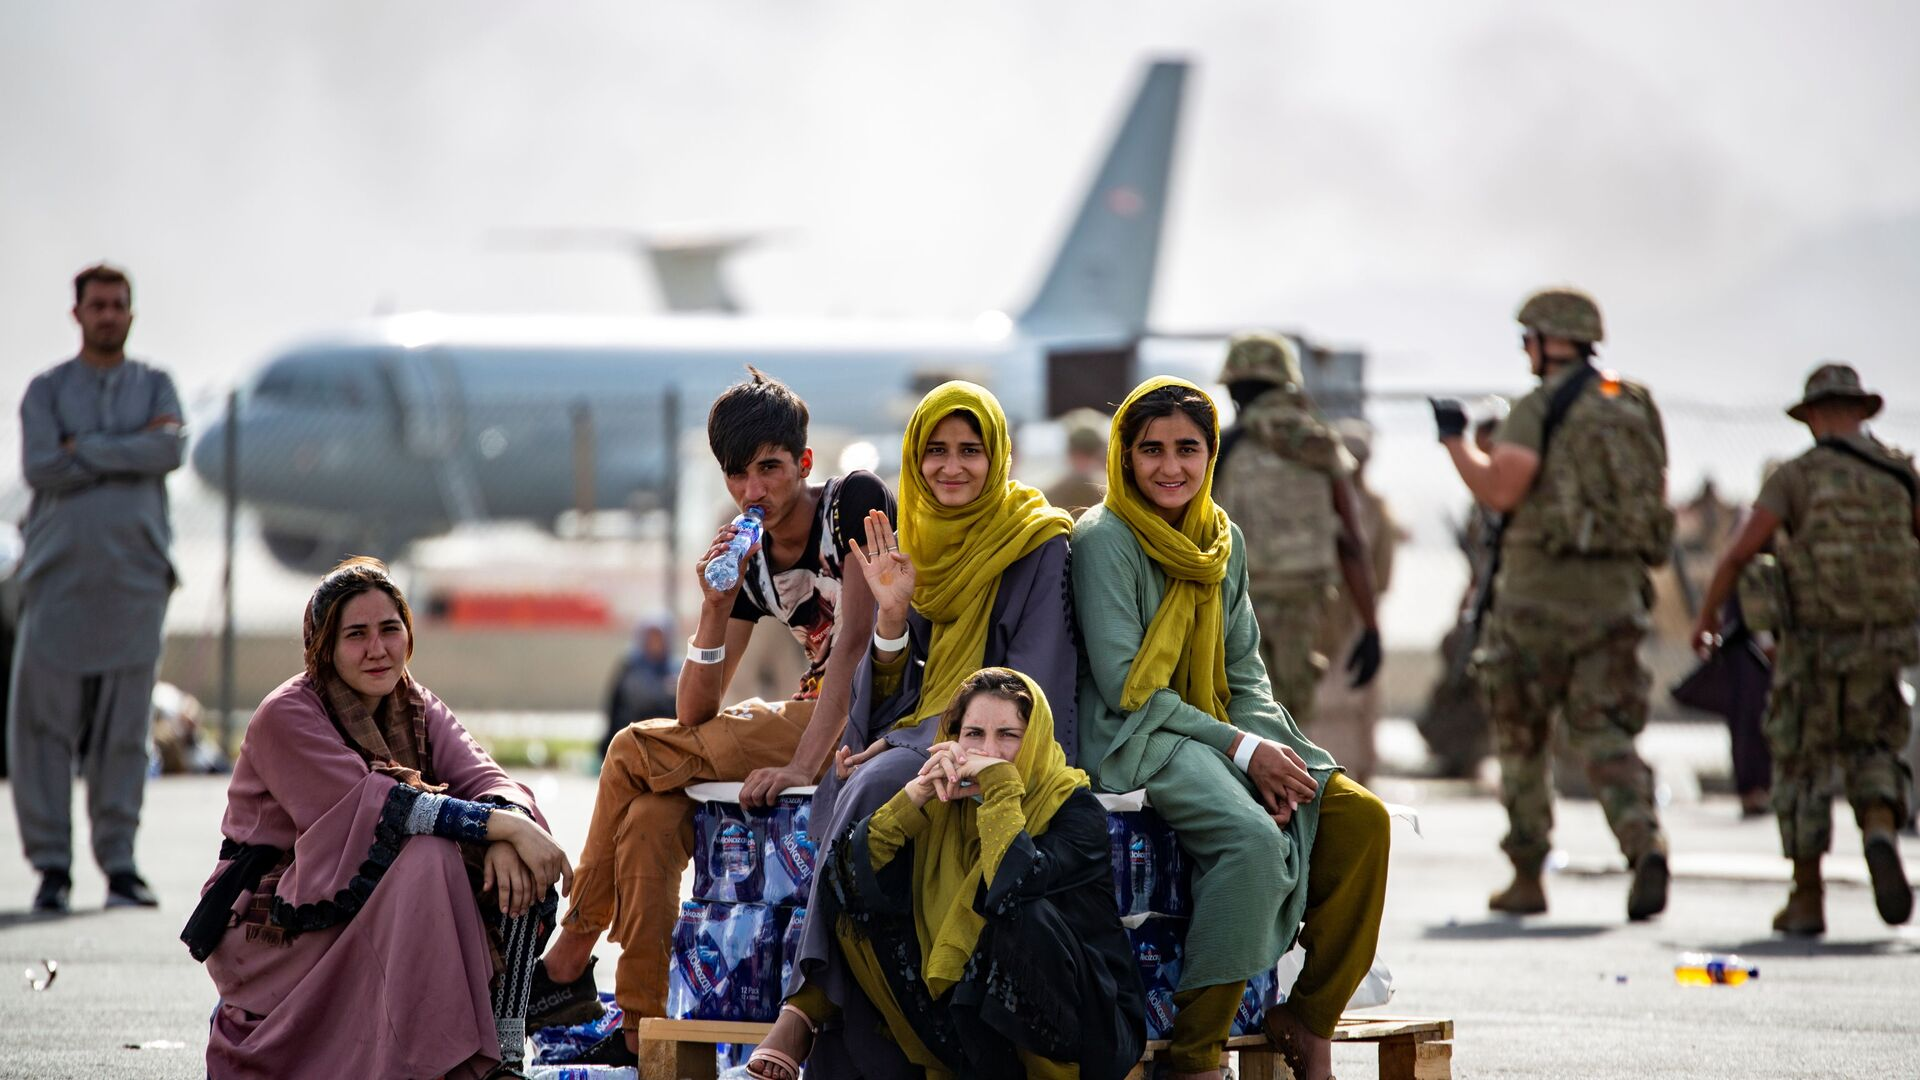 Evacuee children wait for the next flight after being manifested at Hamid Karzai International Airport, in Kabul, Afghanistan, August 19, 2021 - Sputnik International, 1920, 22.08.2021